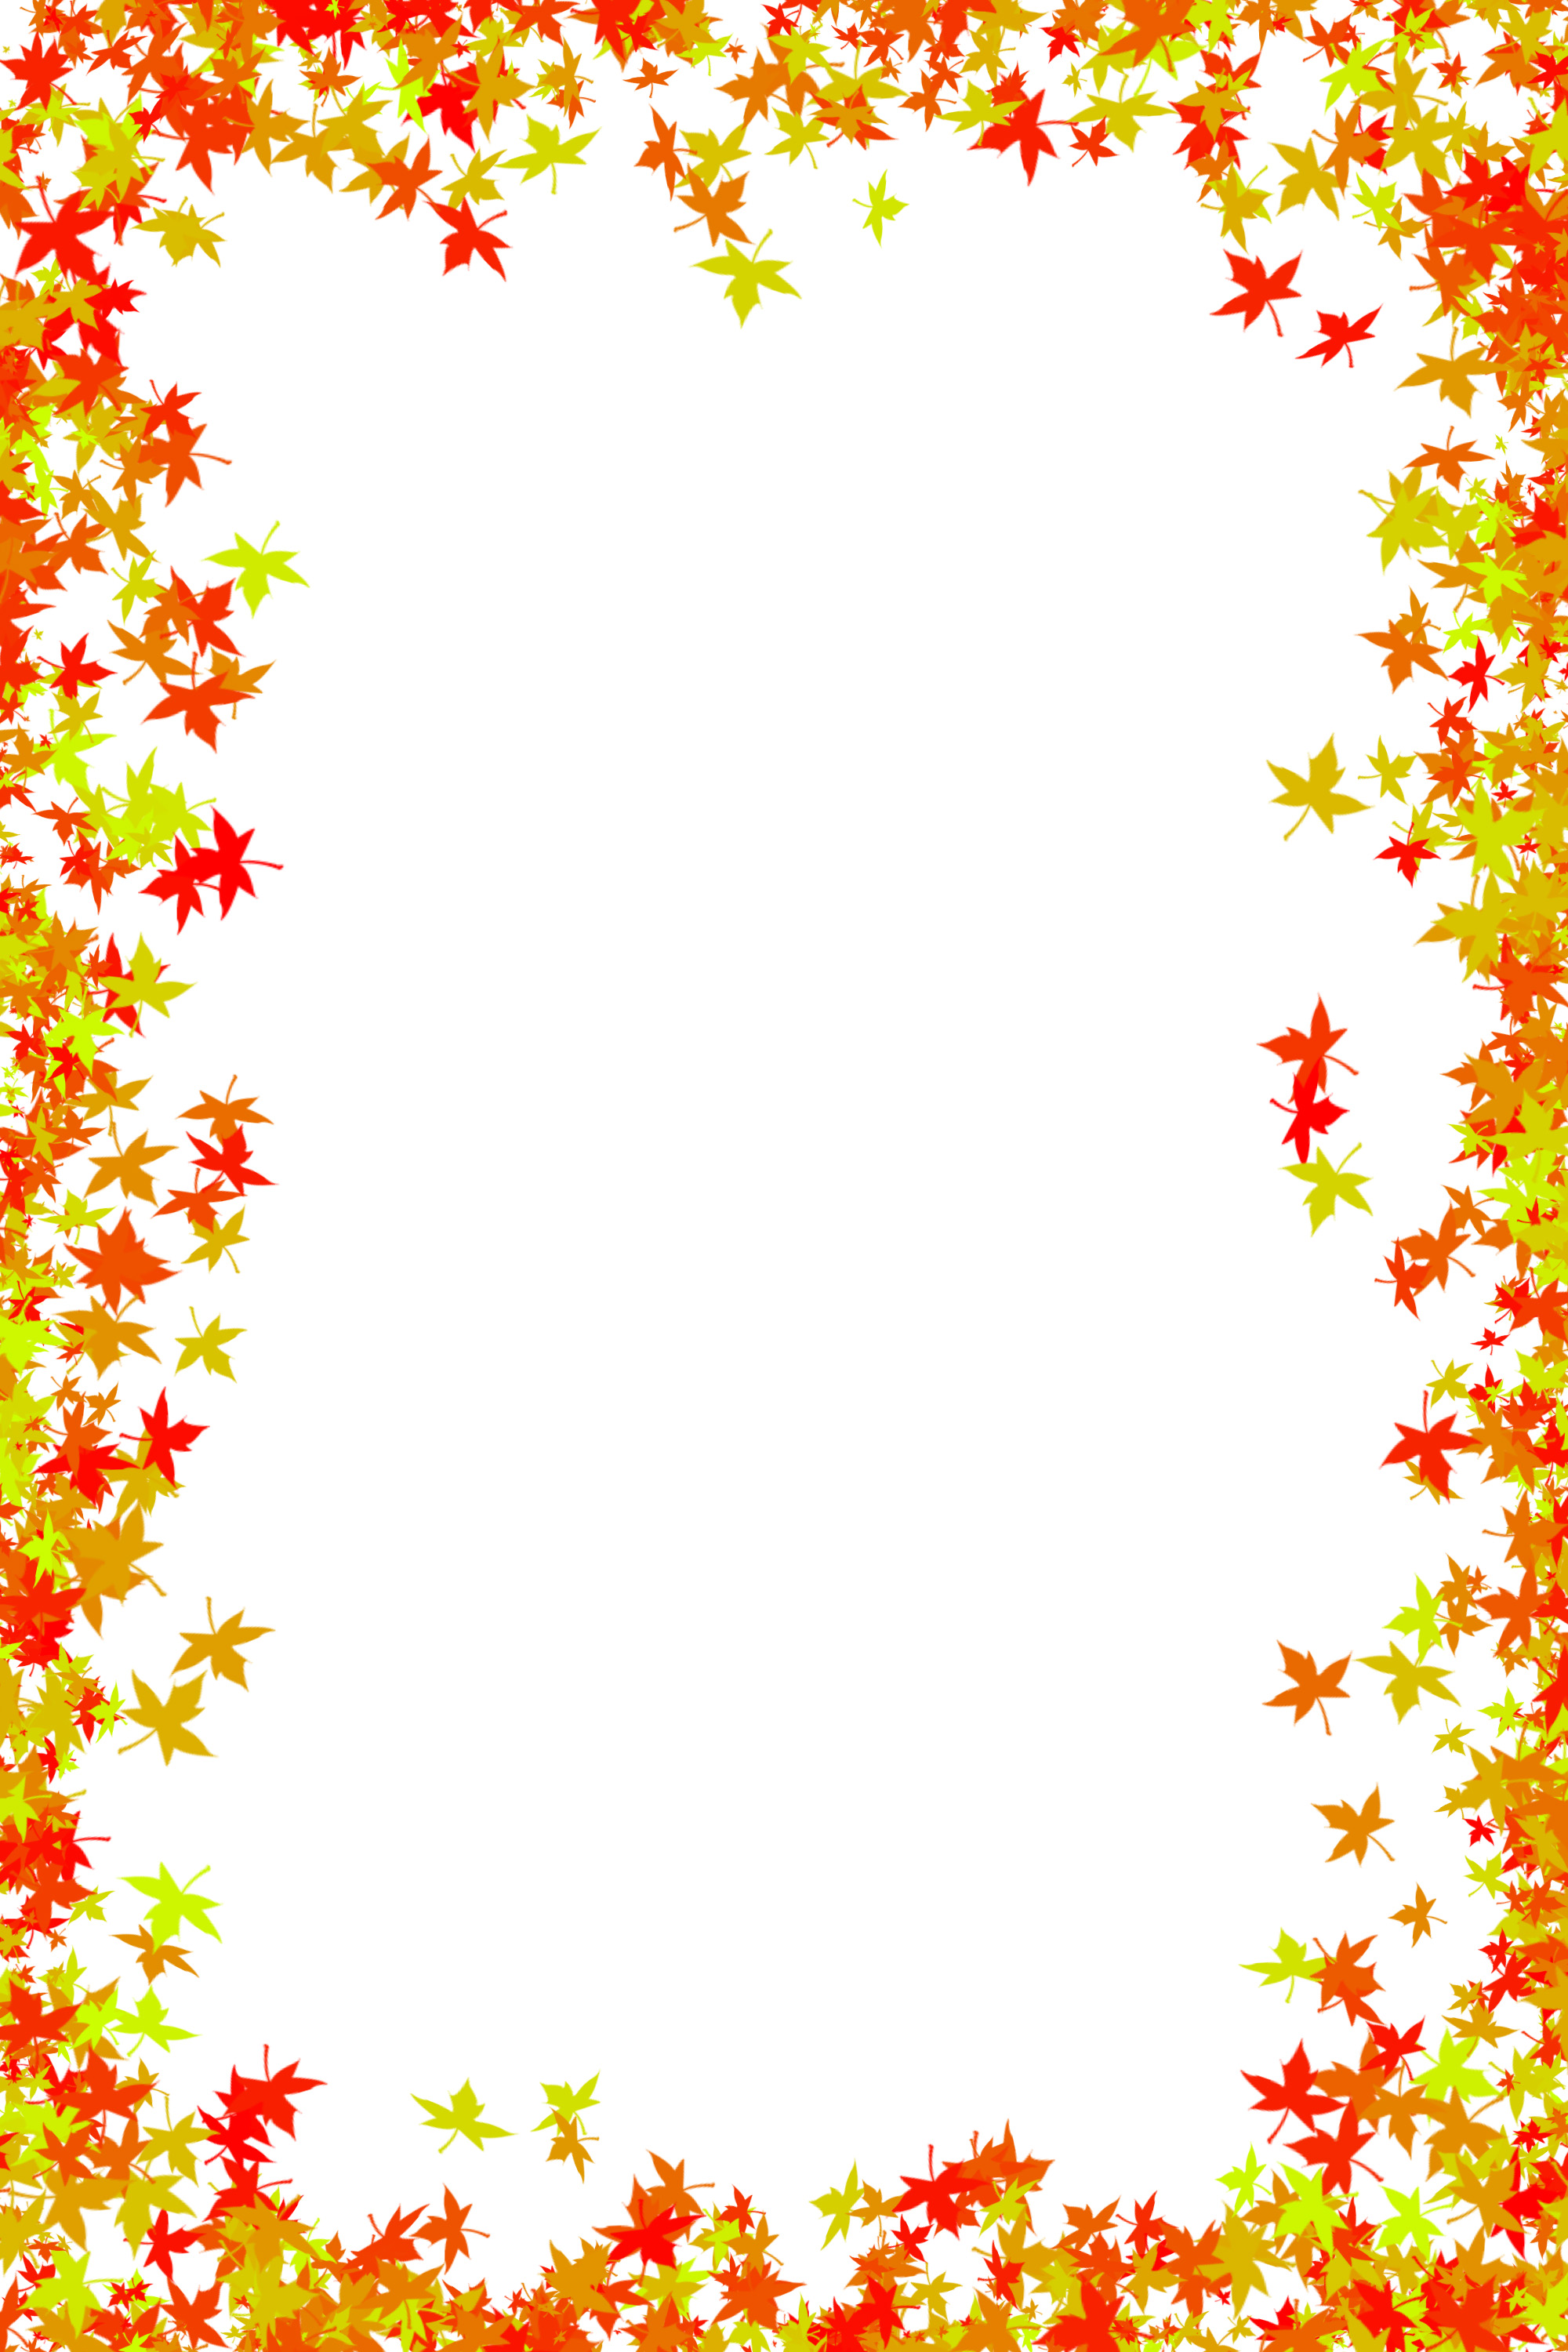 Fall Leaves Page Border http://www.creativity103.com/collections/Graphic/slides/maplesautumn.html